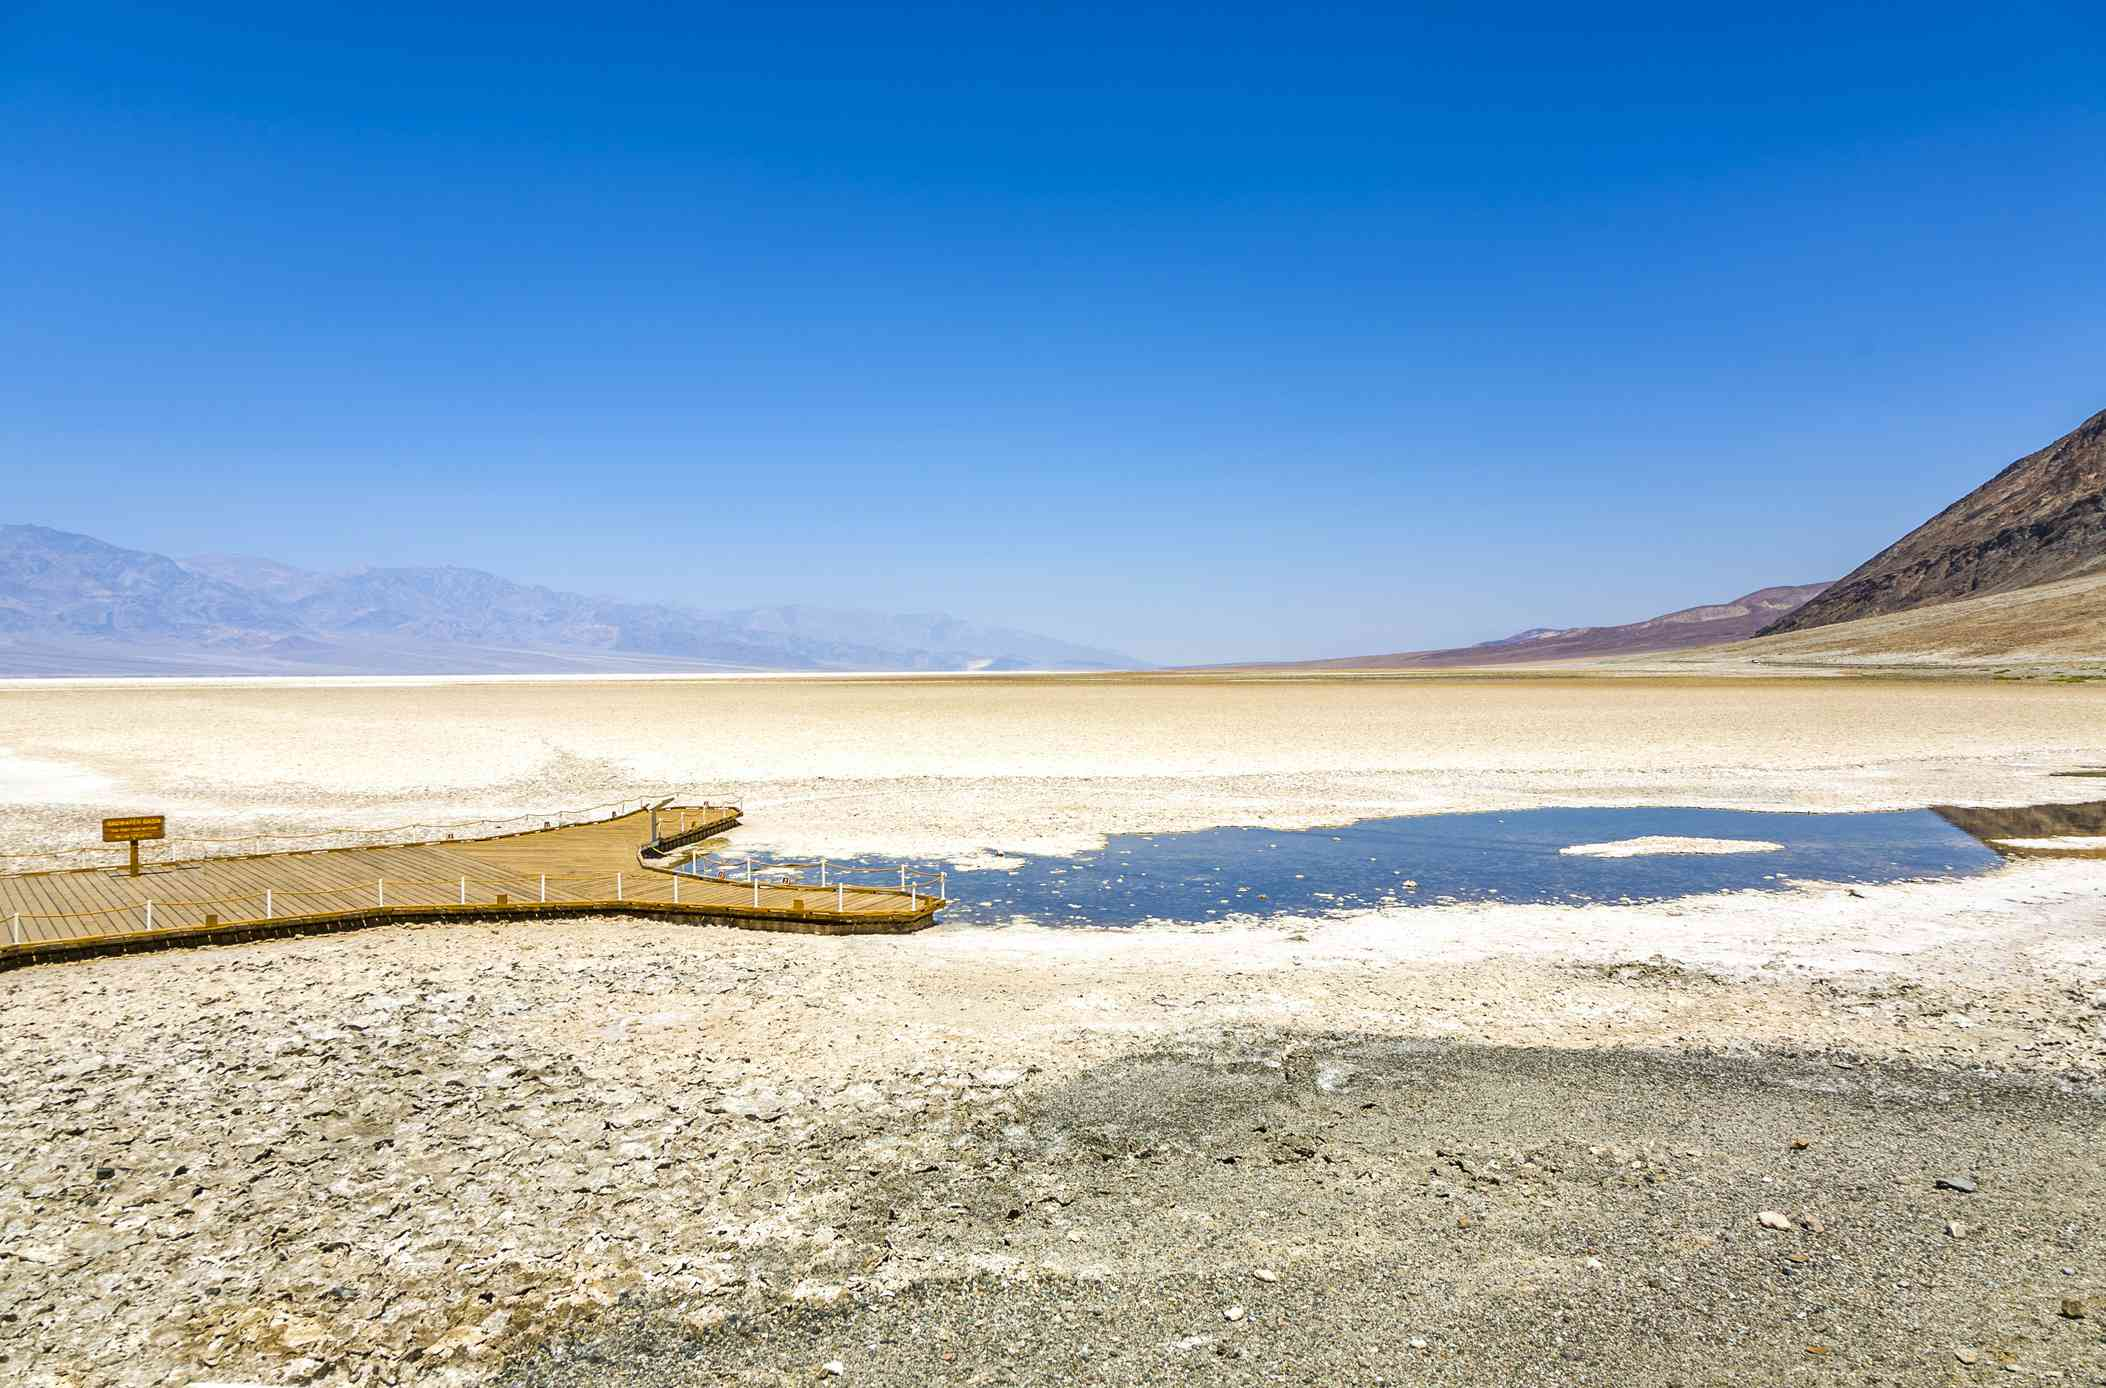 Mostly dried-up Badwater Basin in Death Valley National Park